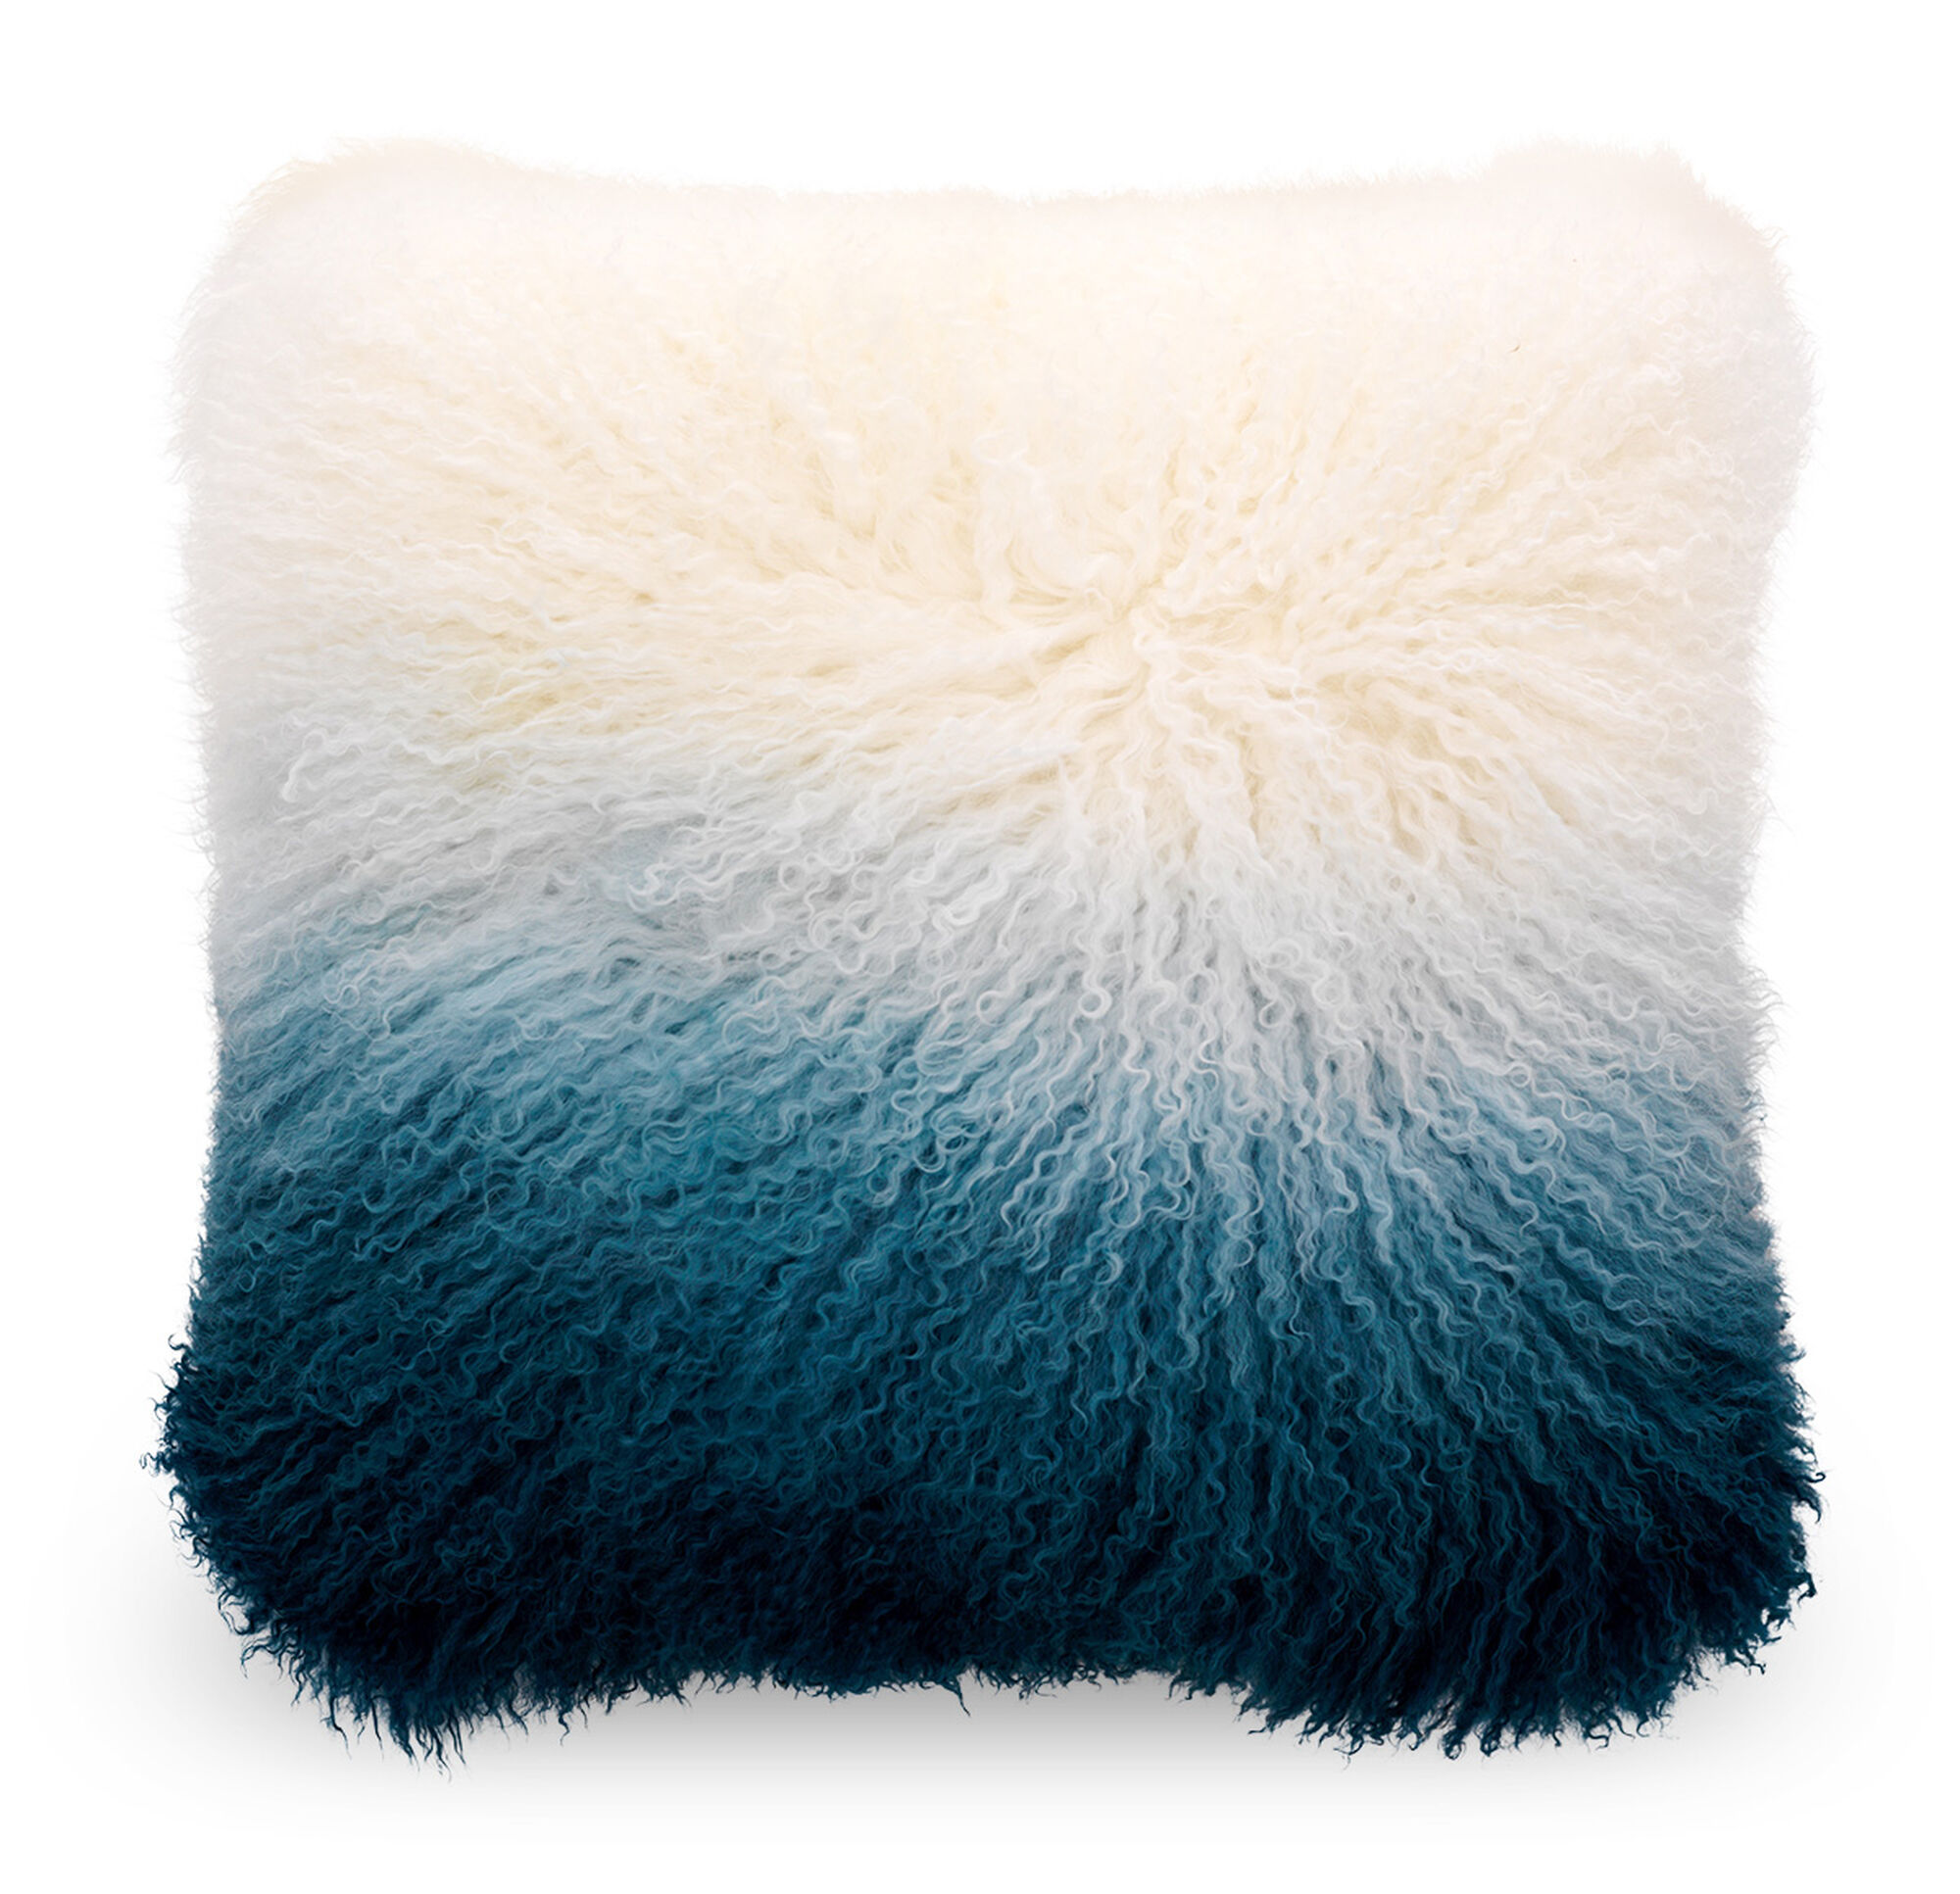 Ombre Ivory And Blue Tibetan Wool Pillow 20x20